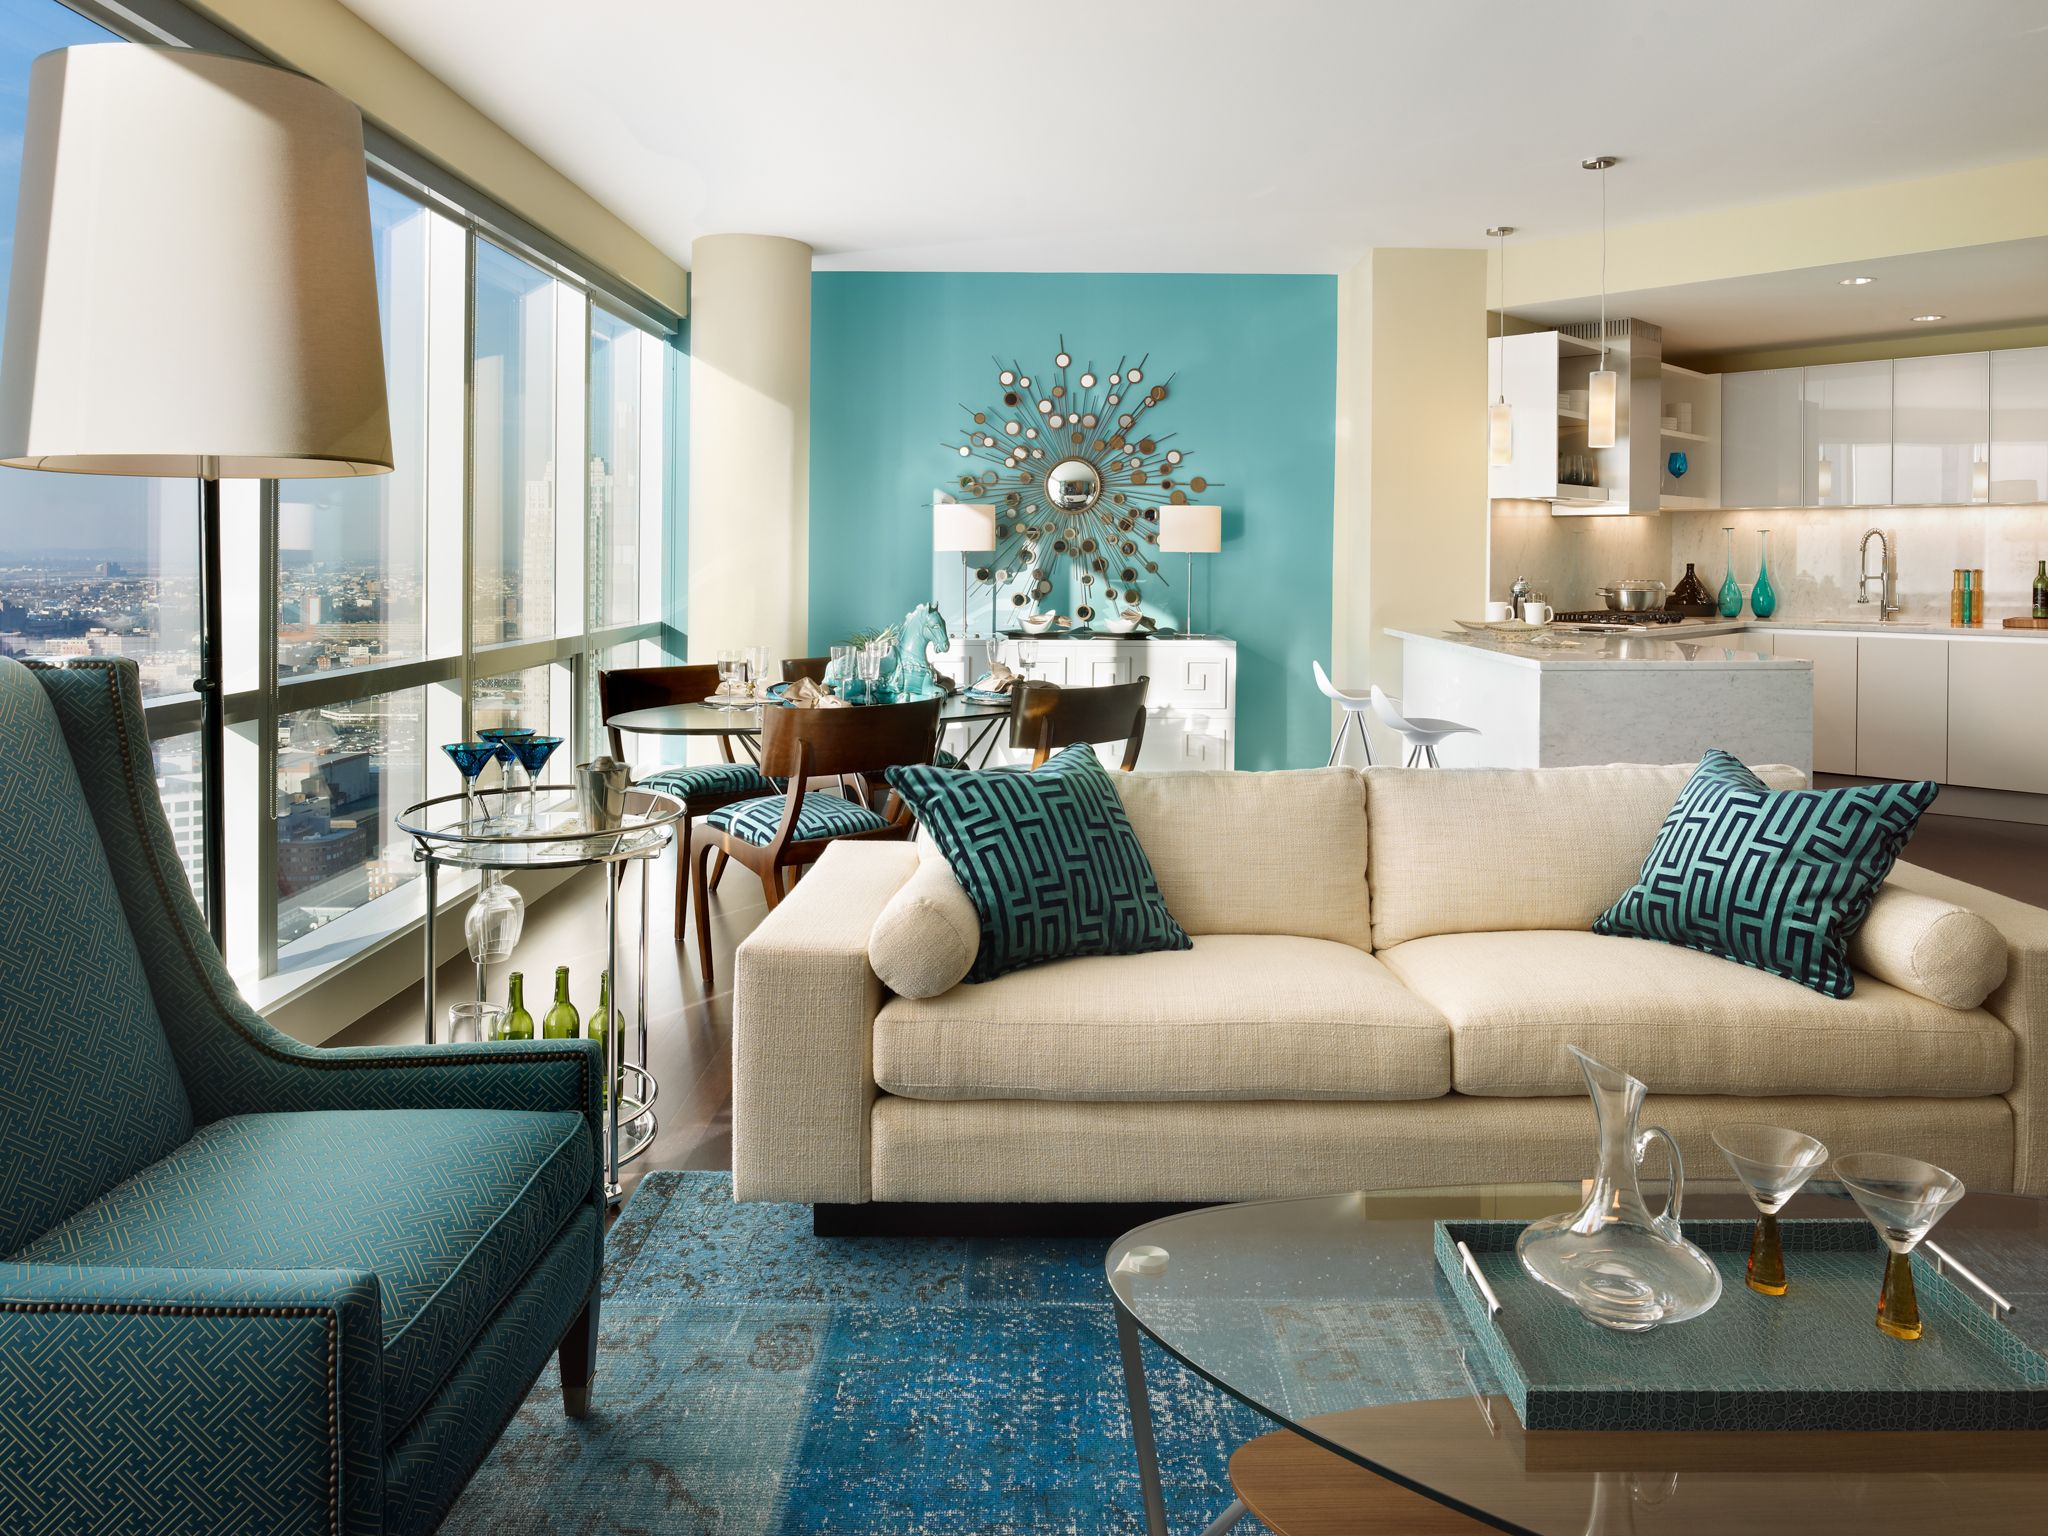 Turquoise sofa contemporary living room katie rosenfeld design - Living Room Contemporary Breathtaking Cream Sleeper Couch And Teal Wall Painted As Well As Open Wide Glass Windowed In